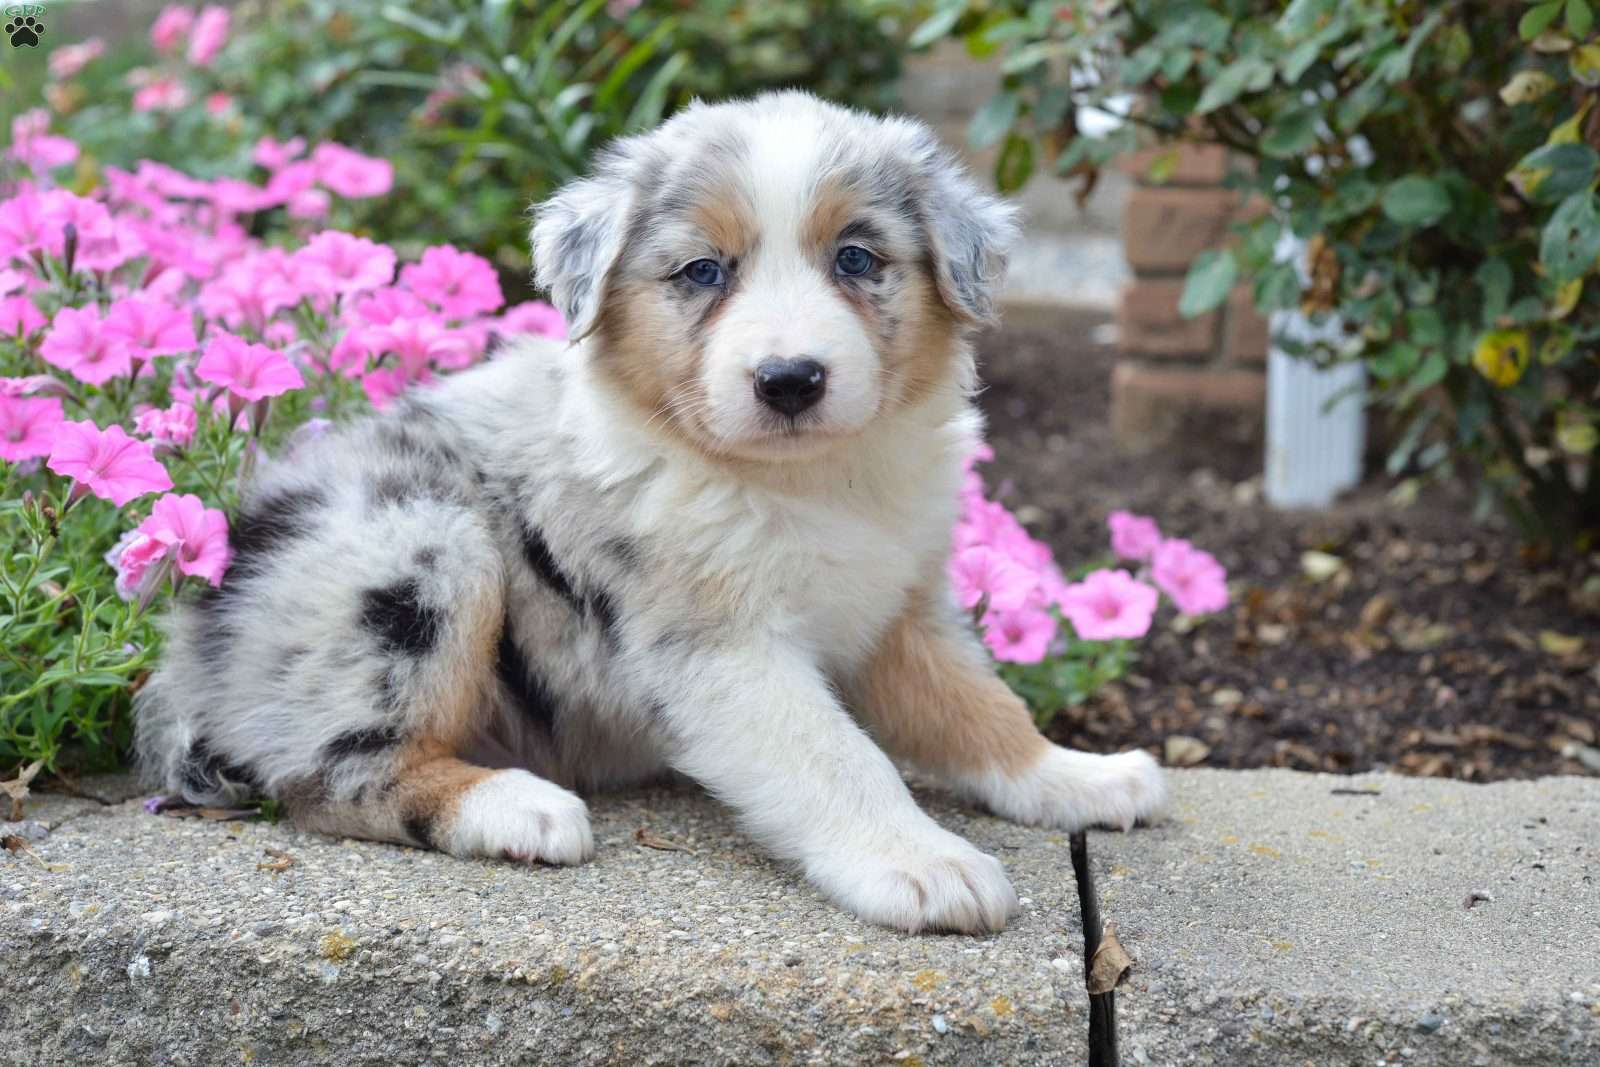 Wolf hybrid puppies for sale in ohio - Connor Australian Shepherd Mix Puppy For Sale In Ohio